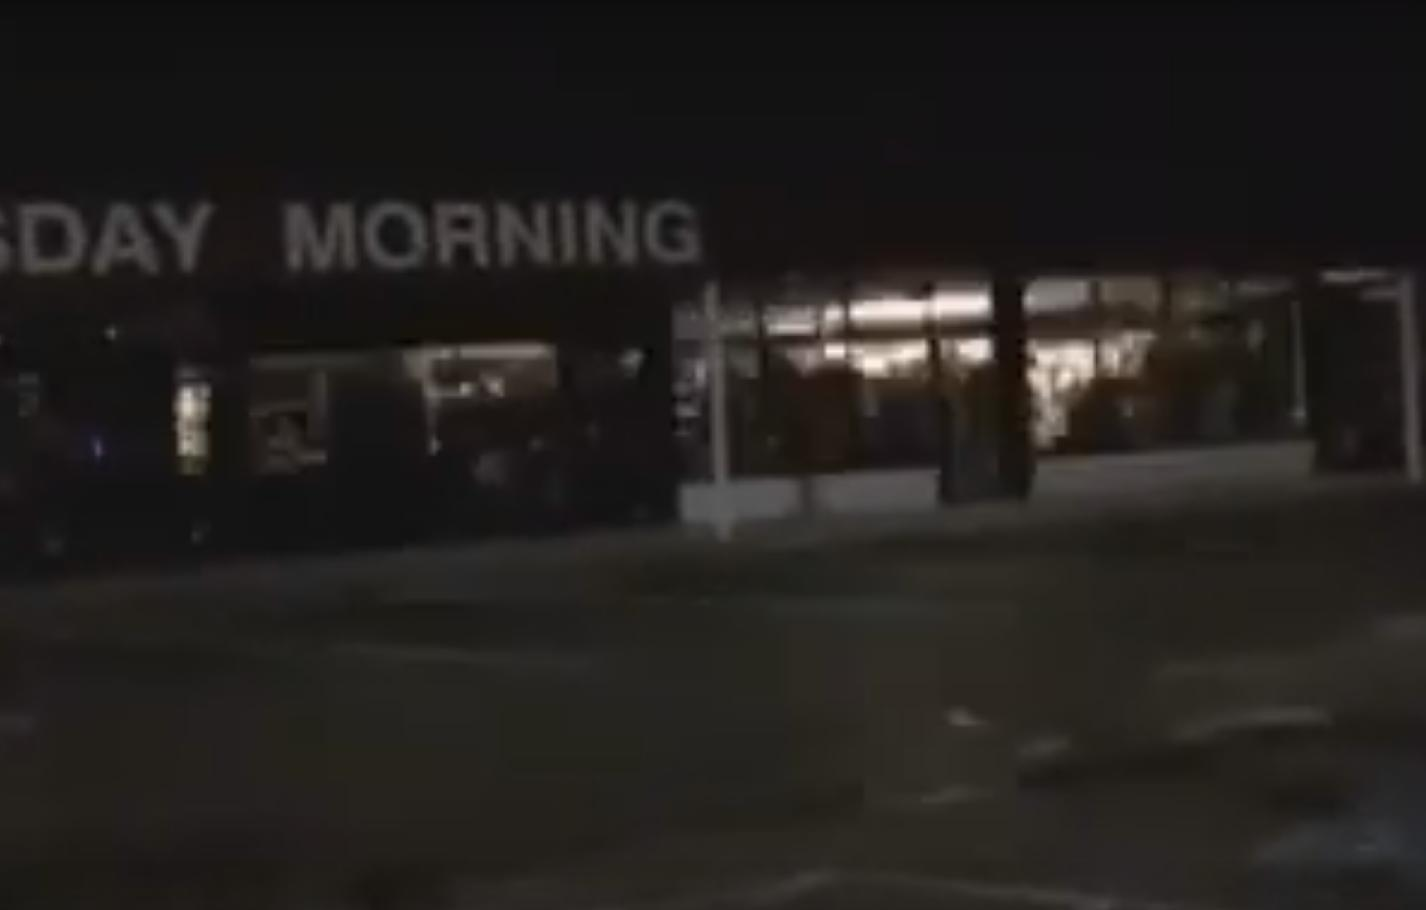 Lights Going Crazy in a Closed Store in the Middle of the Night